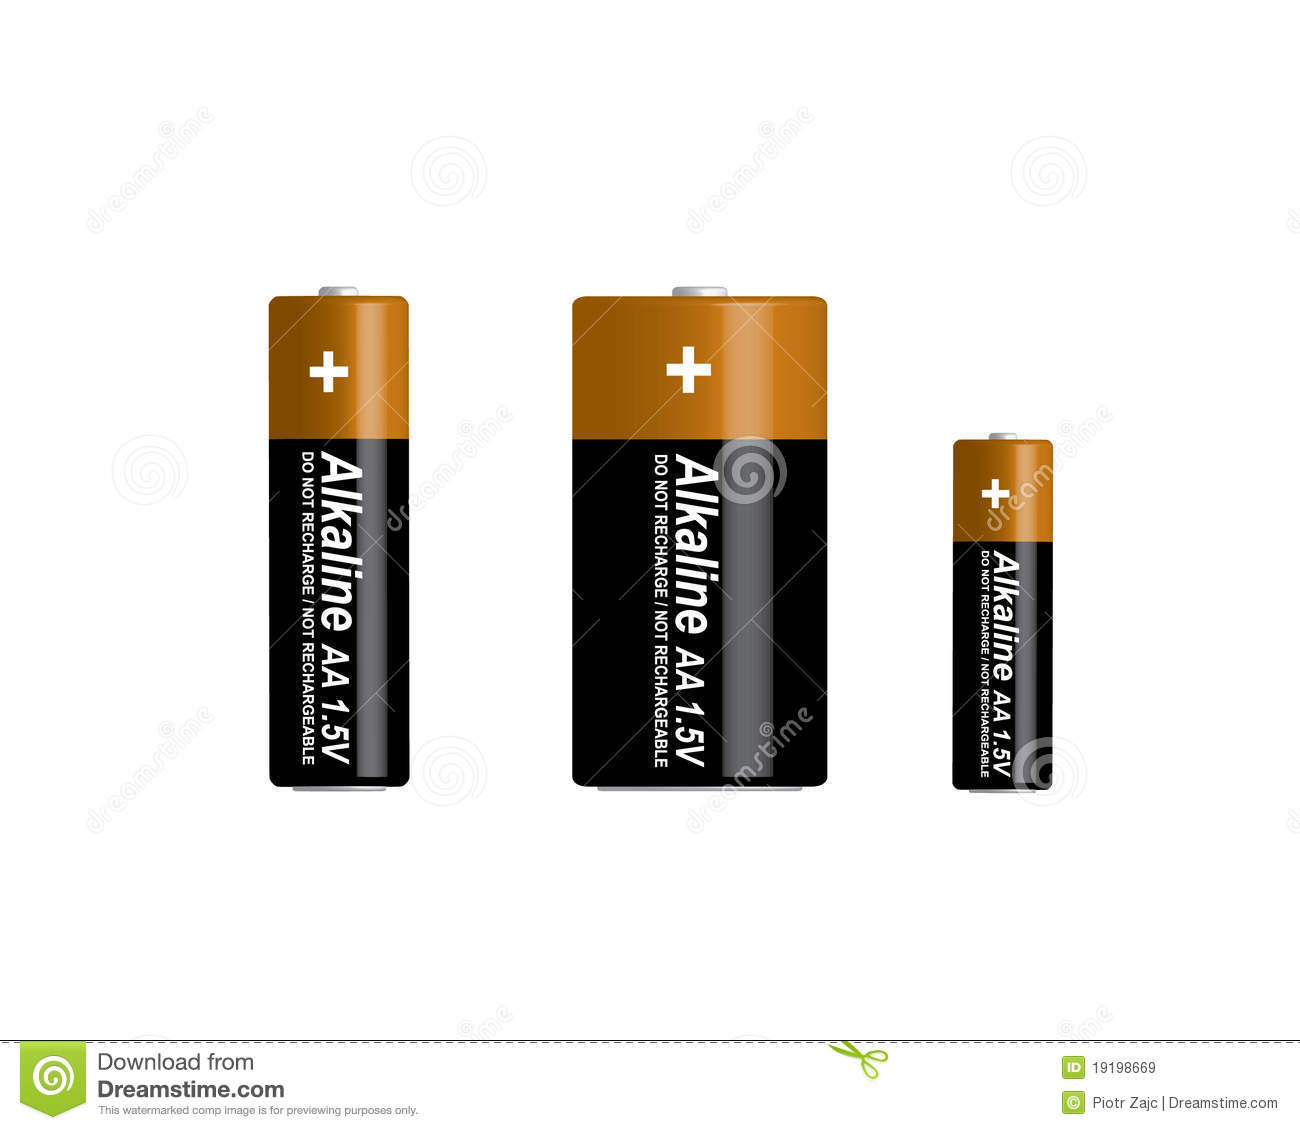 Alkaline batteries: what they are 14